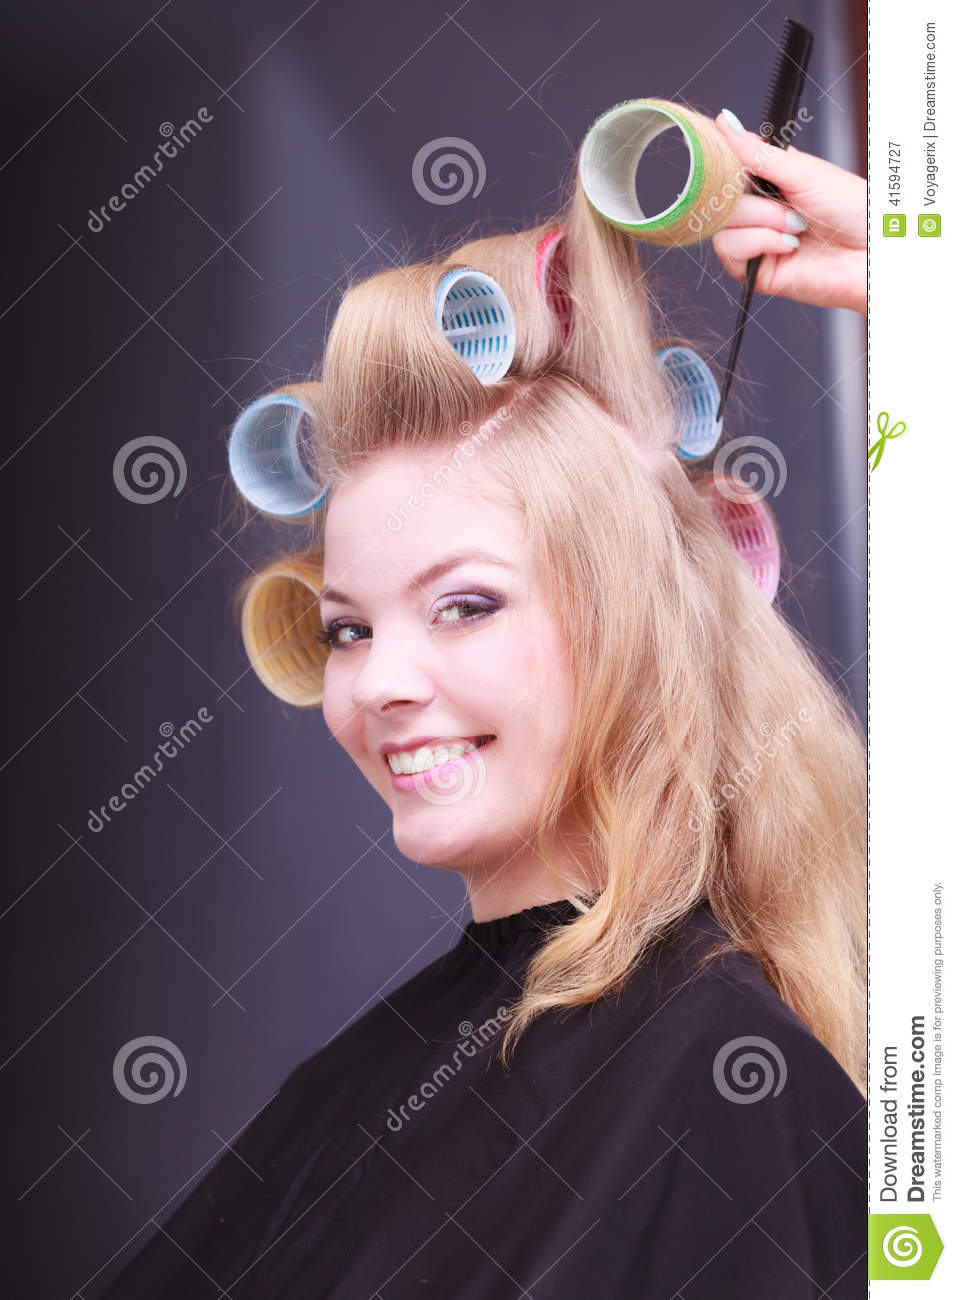 Beautiful Blond Smiling Girl Hair Curlers Rollers